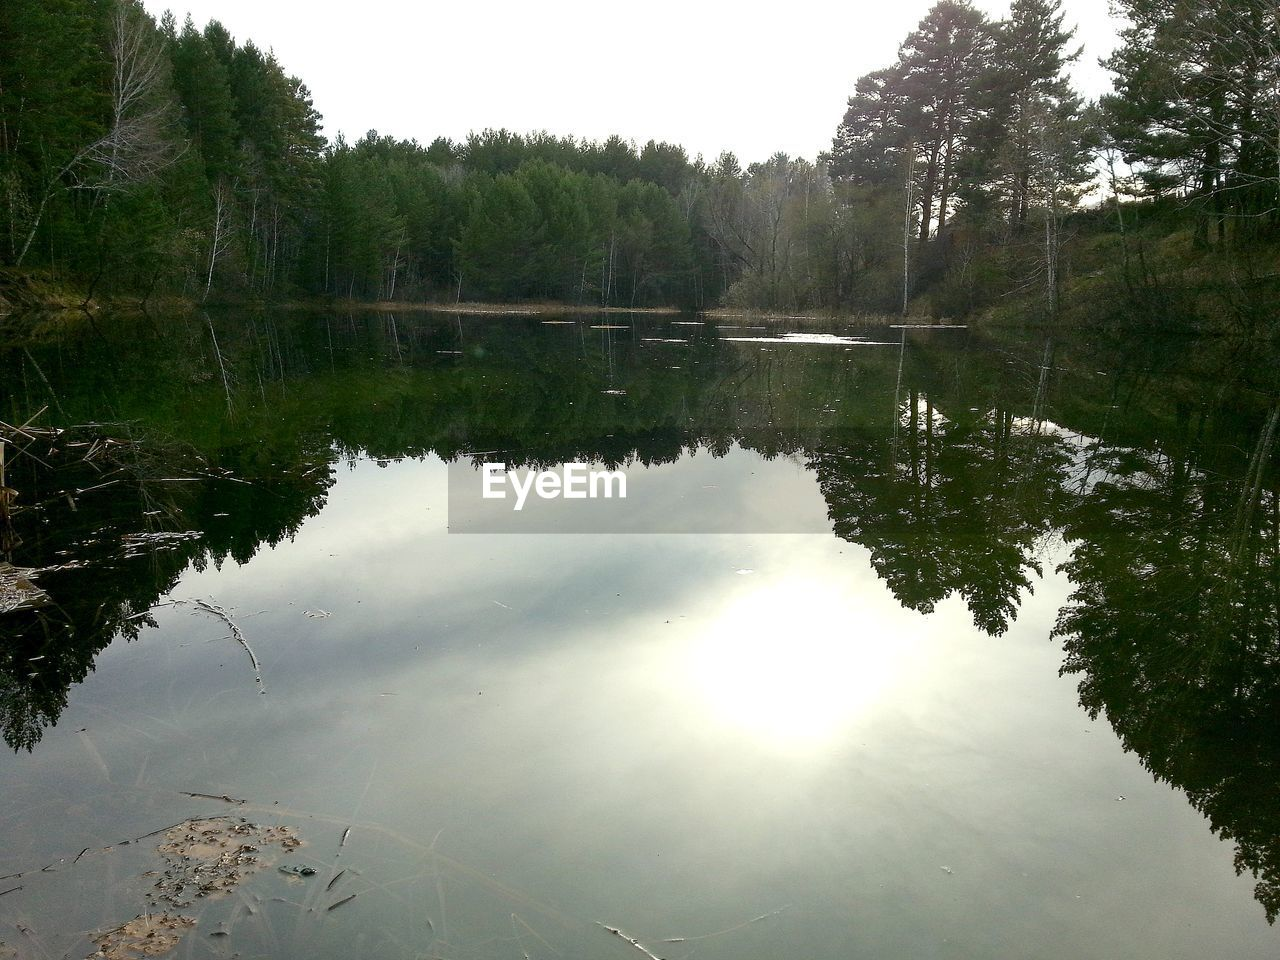 reflection, water, lake, tree, tranquility, plant, tranquil scene, scenics - nature, beauty in nature, sky, nature, no people, day, non-urban scene, waterfront, outdoors, forest, idyllic, growth, reflection lake